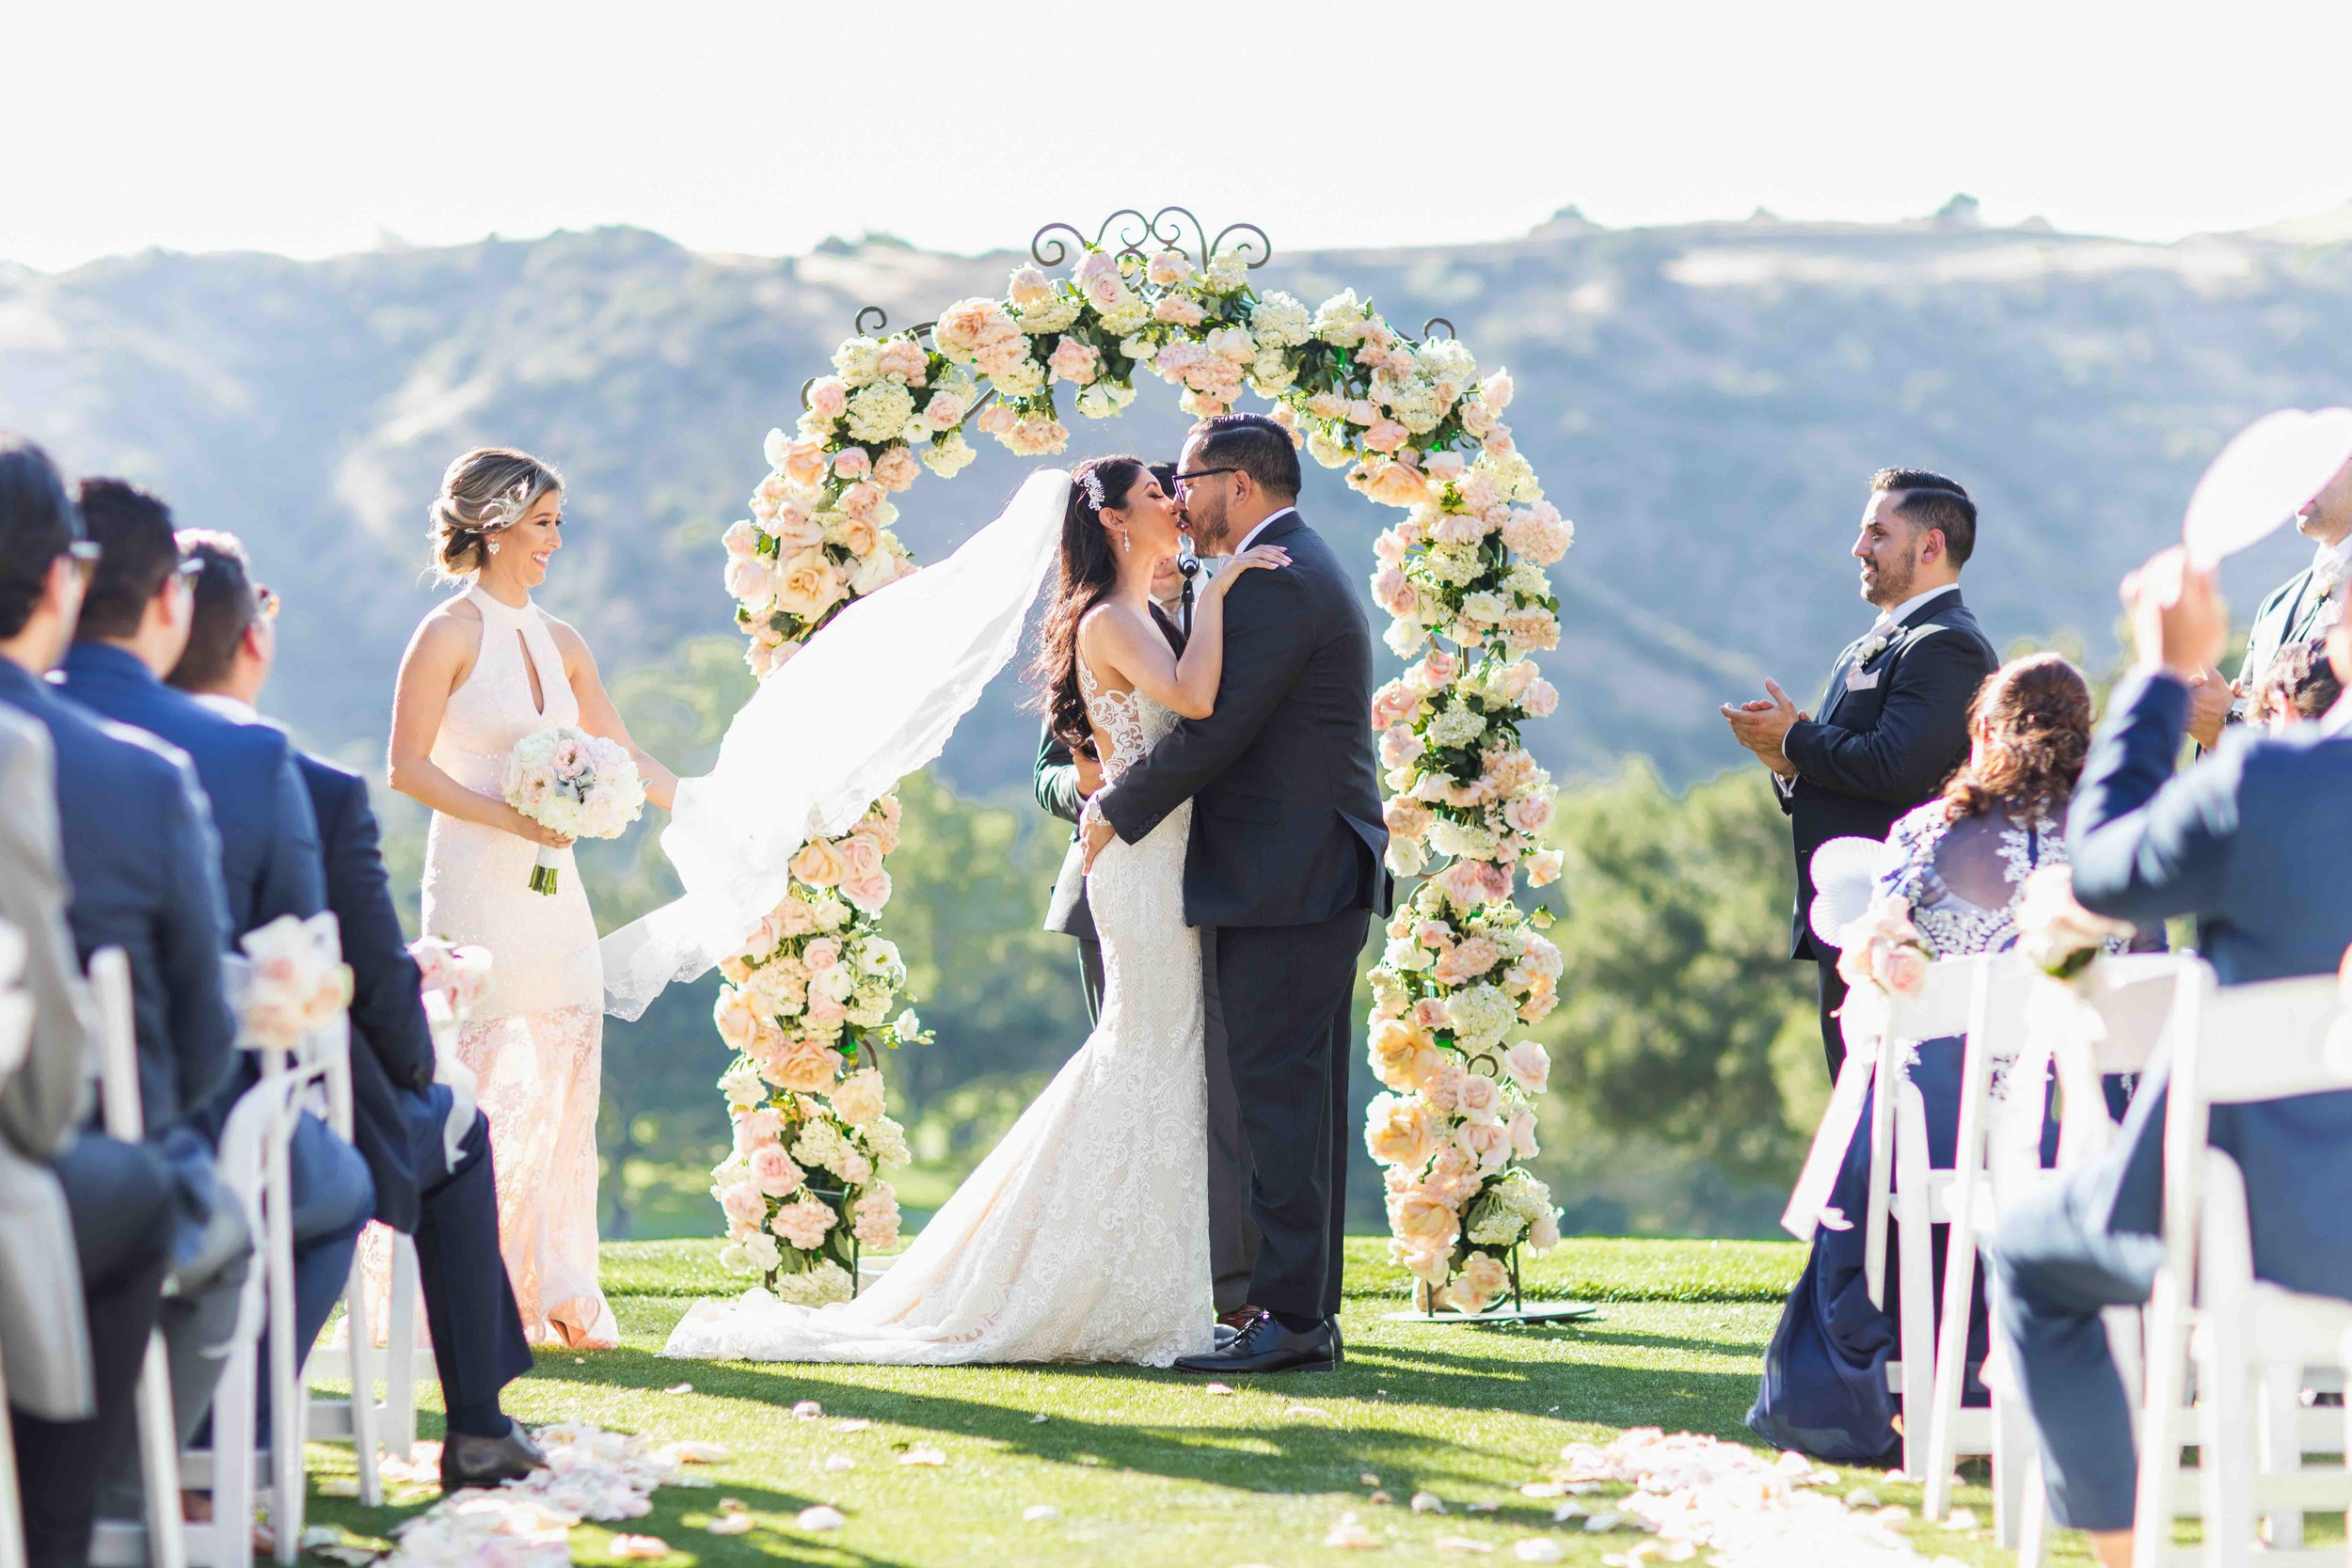 Mountain Gate Wedding Ceremony134.jpg